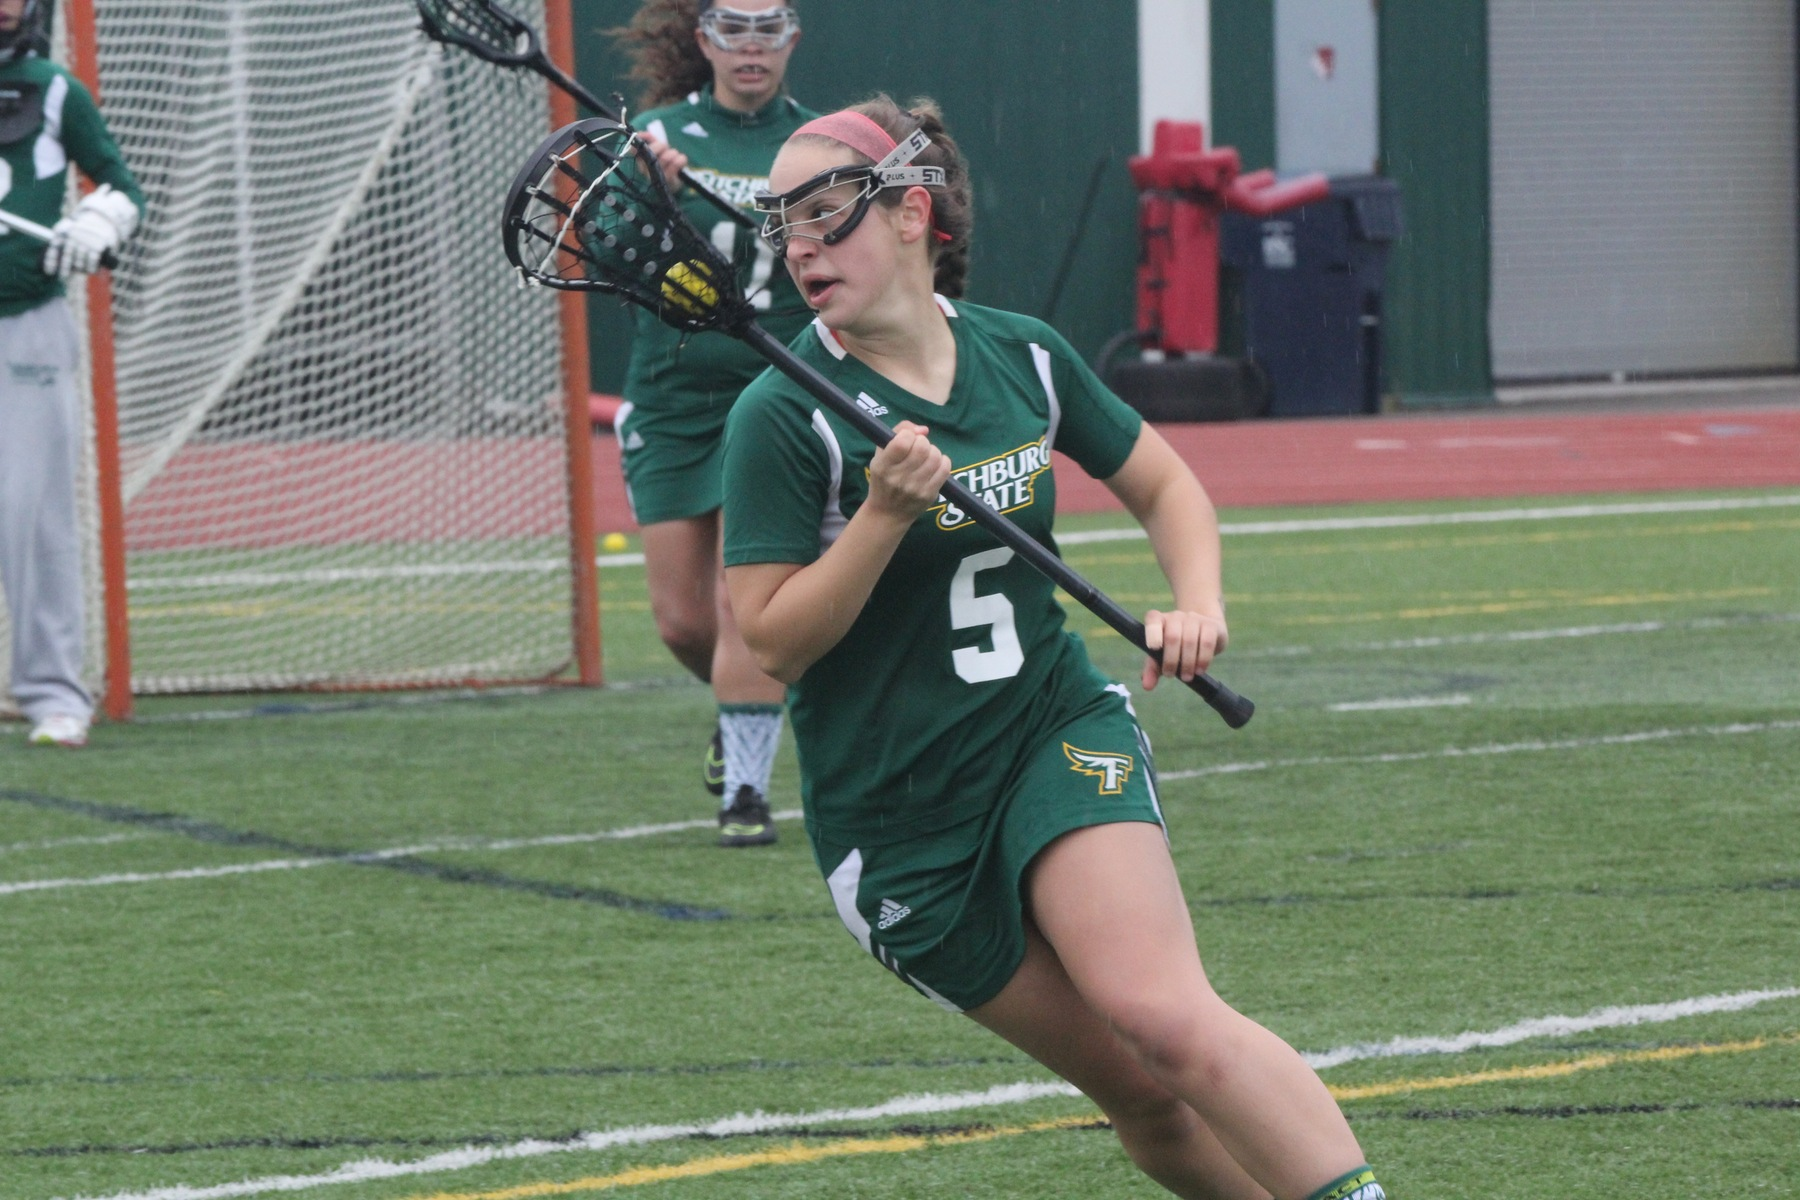 Fitchburg State Nips Worcester State, 11-10